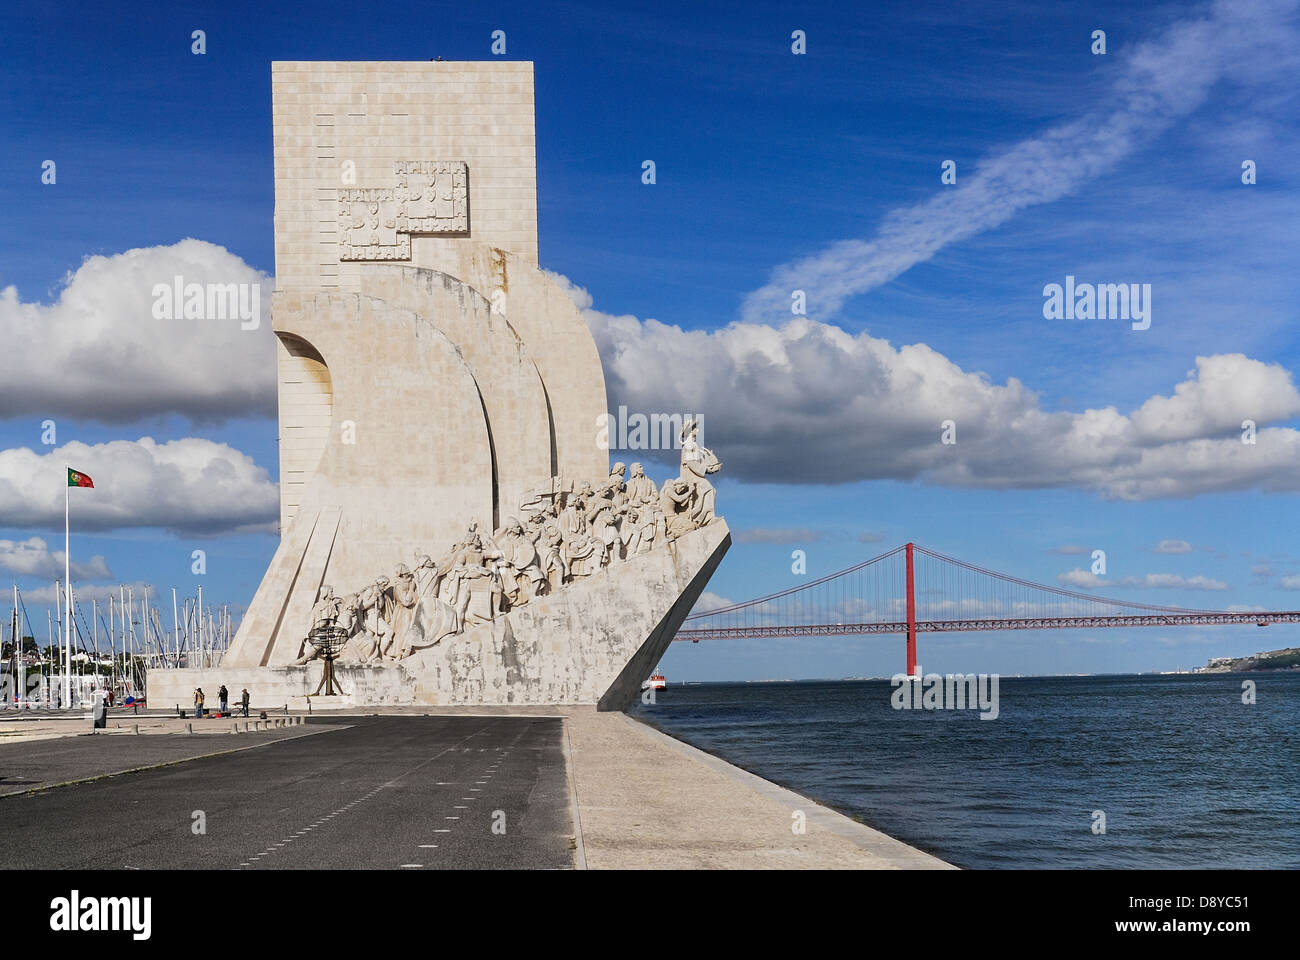 Portugal, Estremadura, Lisbon, Prince Henry the Navigator leading the Discoveries Monument with Ponte 25th Abril - Stock Image